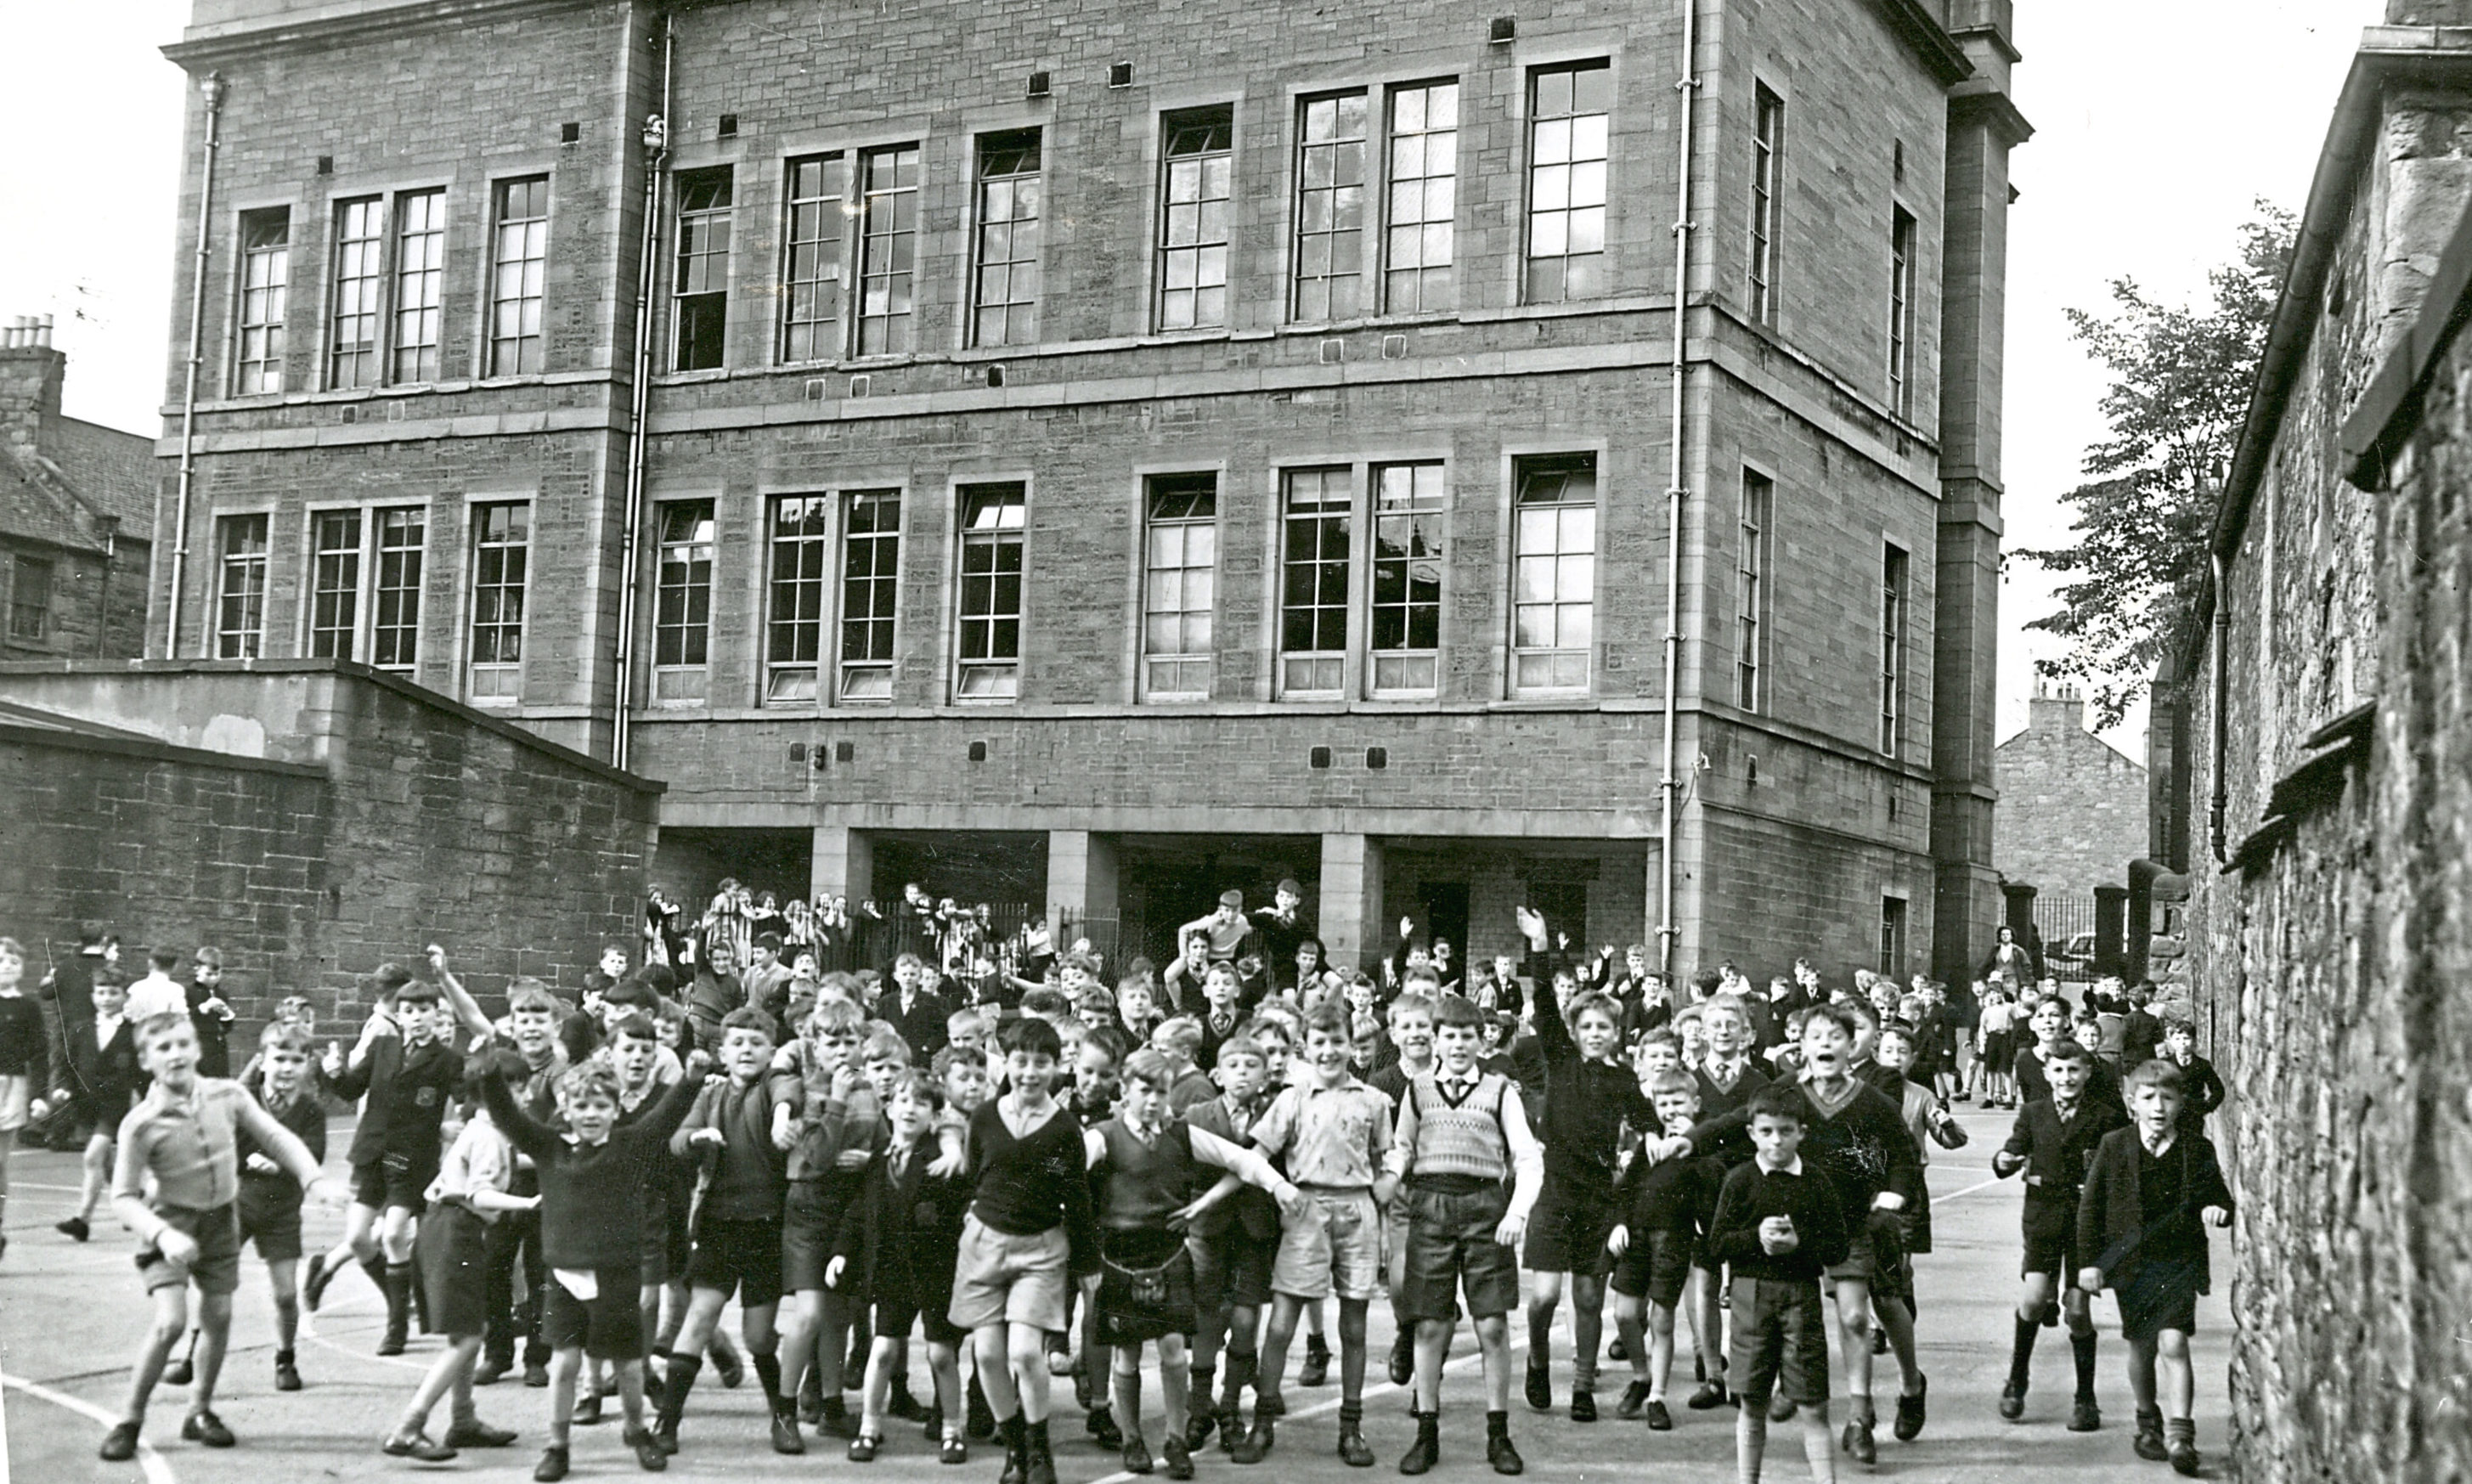 Exterior shot of Hawkhill School playground and pupils. September 14 1961.